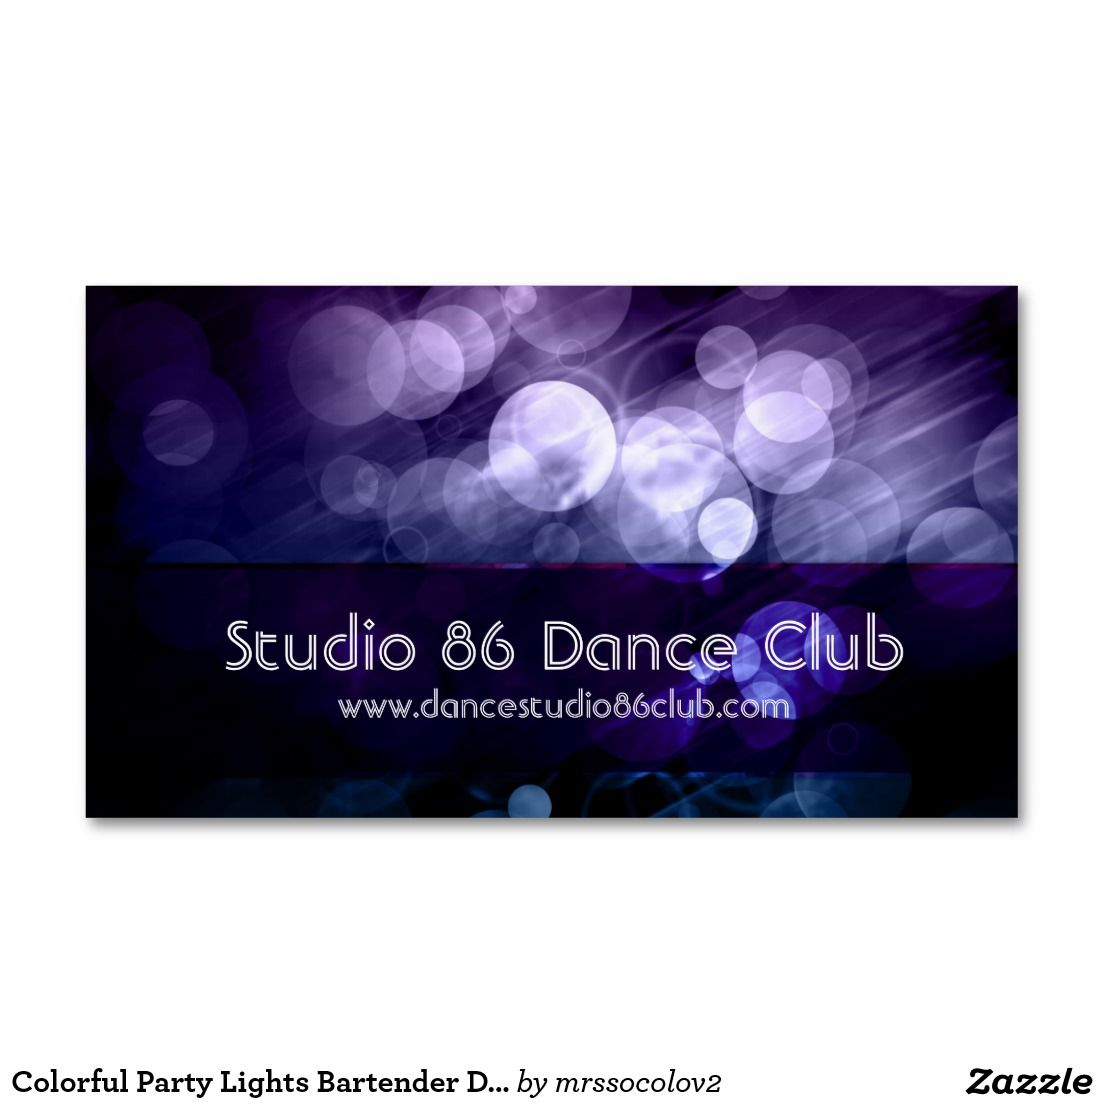 Colorful Party Lights Bartender DJ Business Cards | Business Cards ...